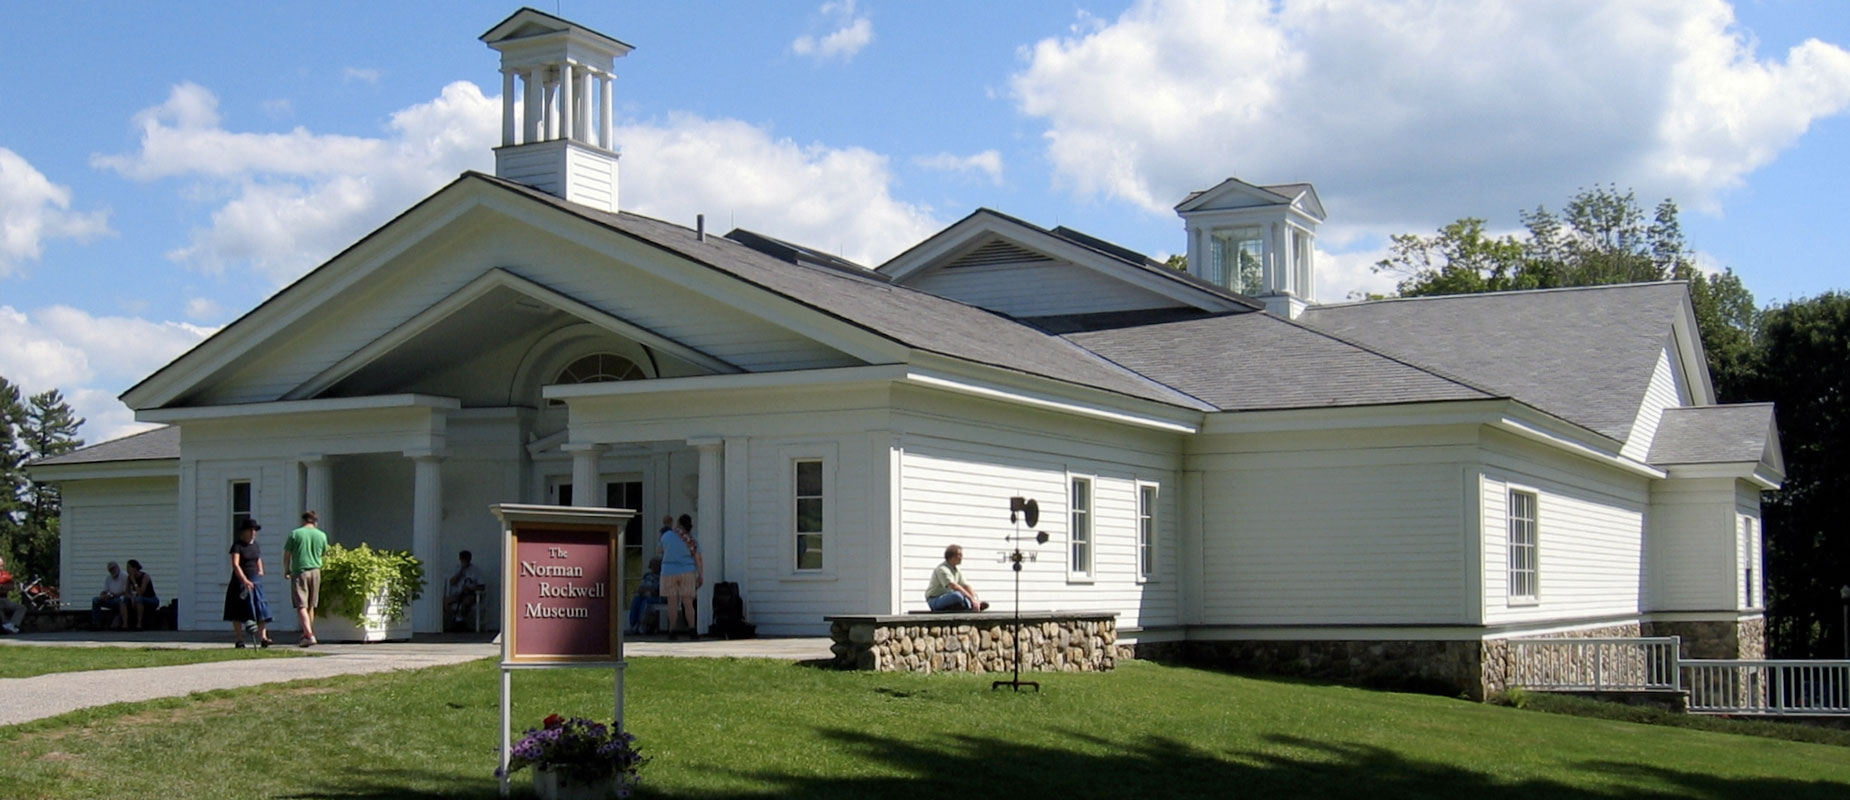 Norman Rockwell Museum minutes from Kripalu Center transportation